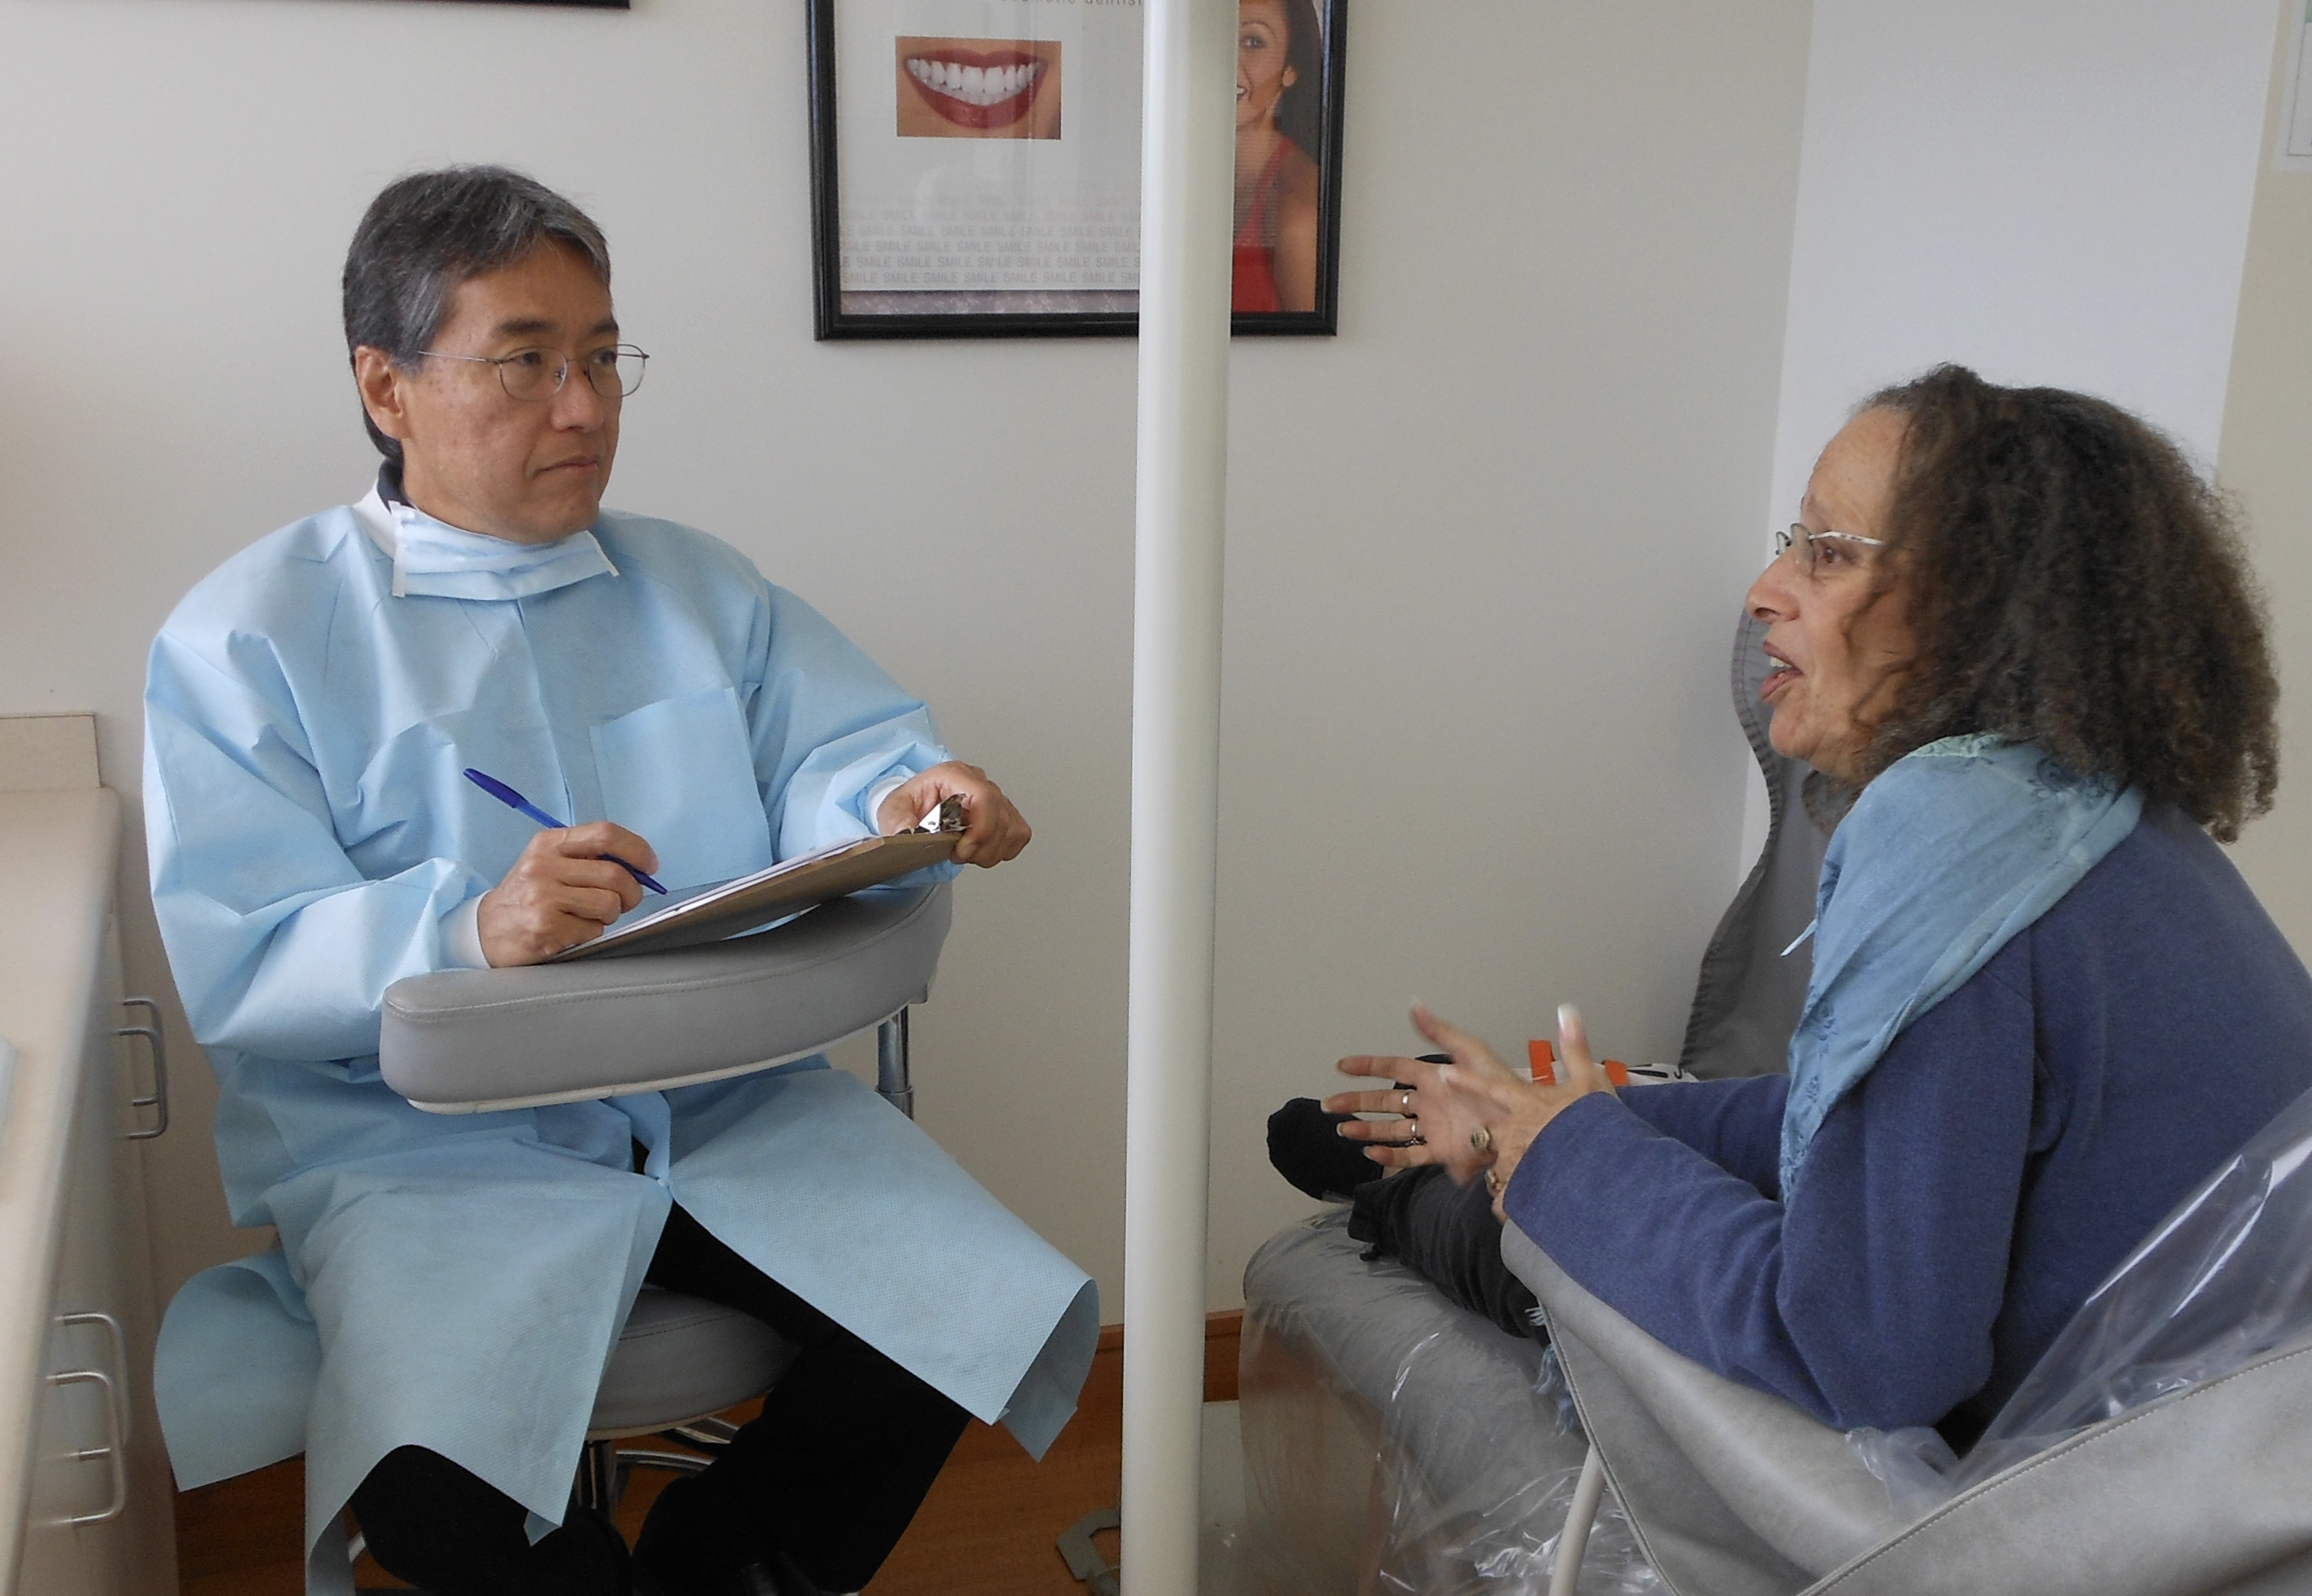 Dentist from Wailuku Maui HI Educates the Public on Using Legitimate Teeth Whitening Procedures